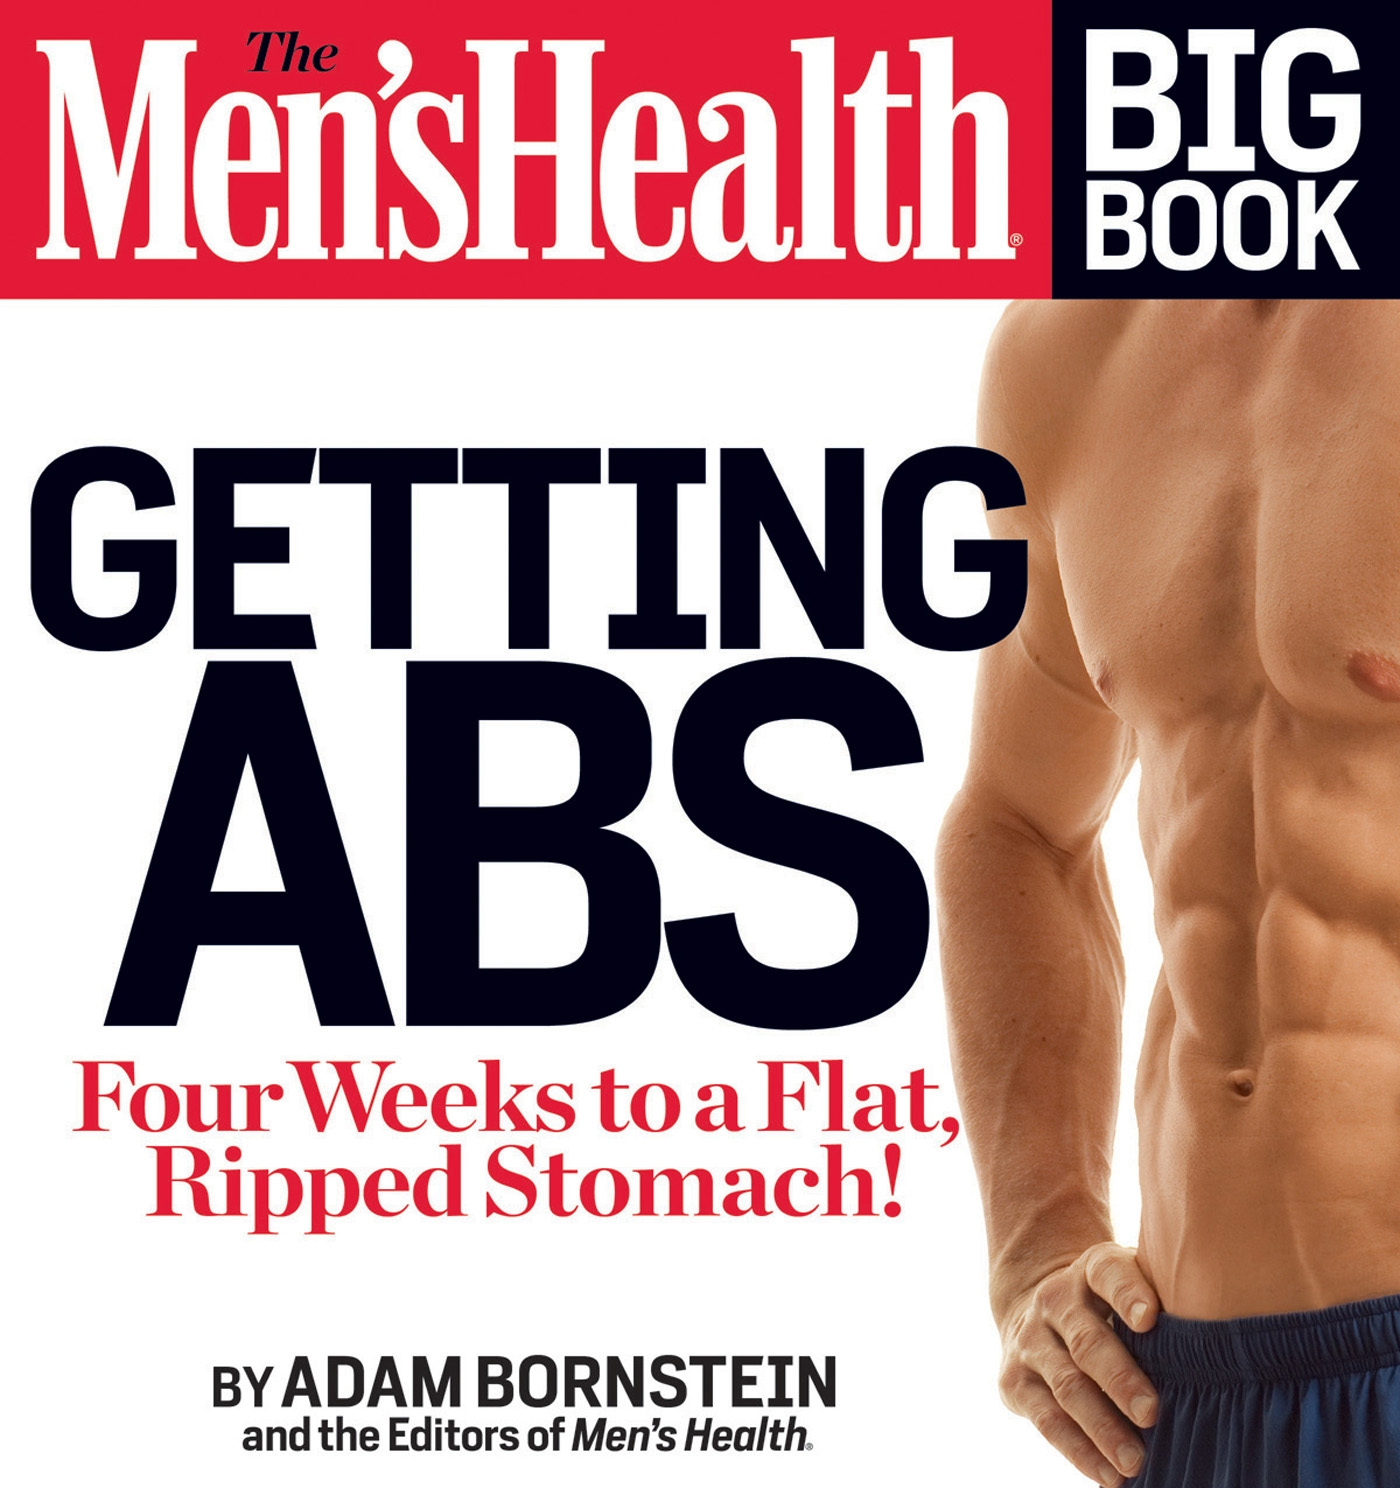 The Men's Health Big Book: Getting Abs : Get a Flat, Ripped Stomach and Your Strongest Body Ever--in Four Weeks